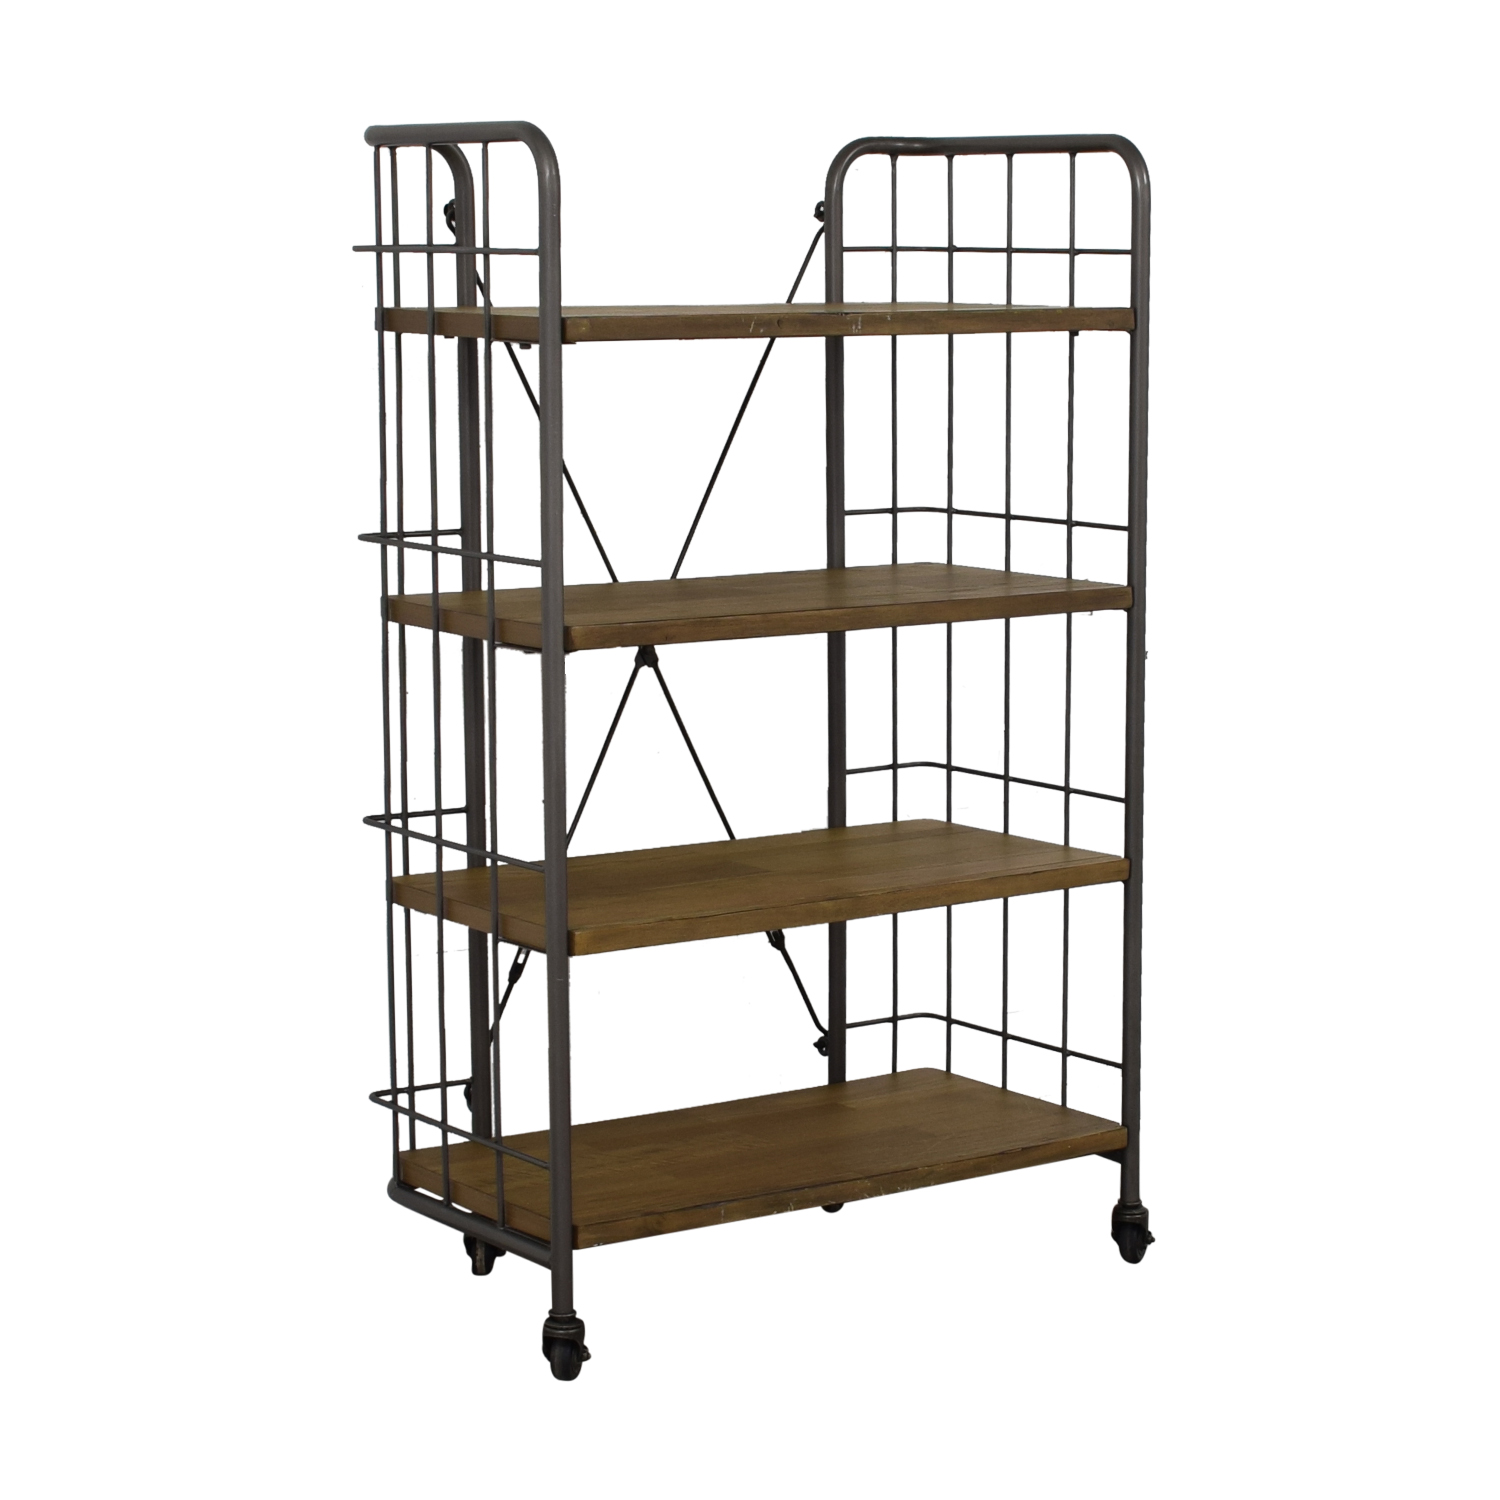 World Market World Market Industrial Four-Tier Shelves with Casters for sale